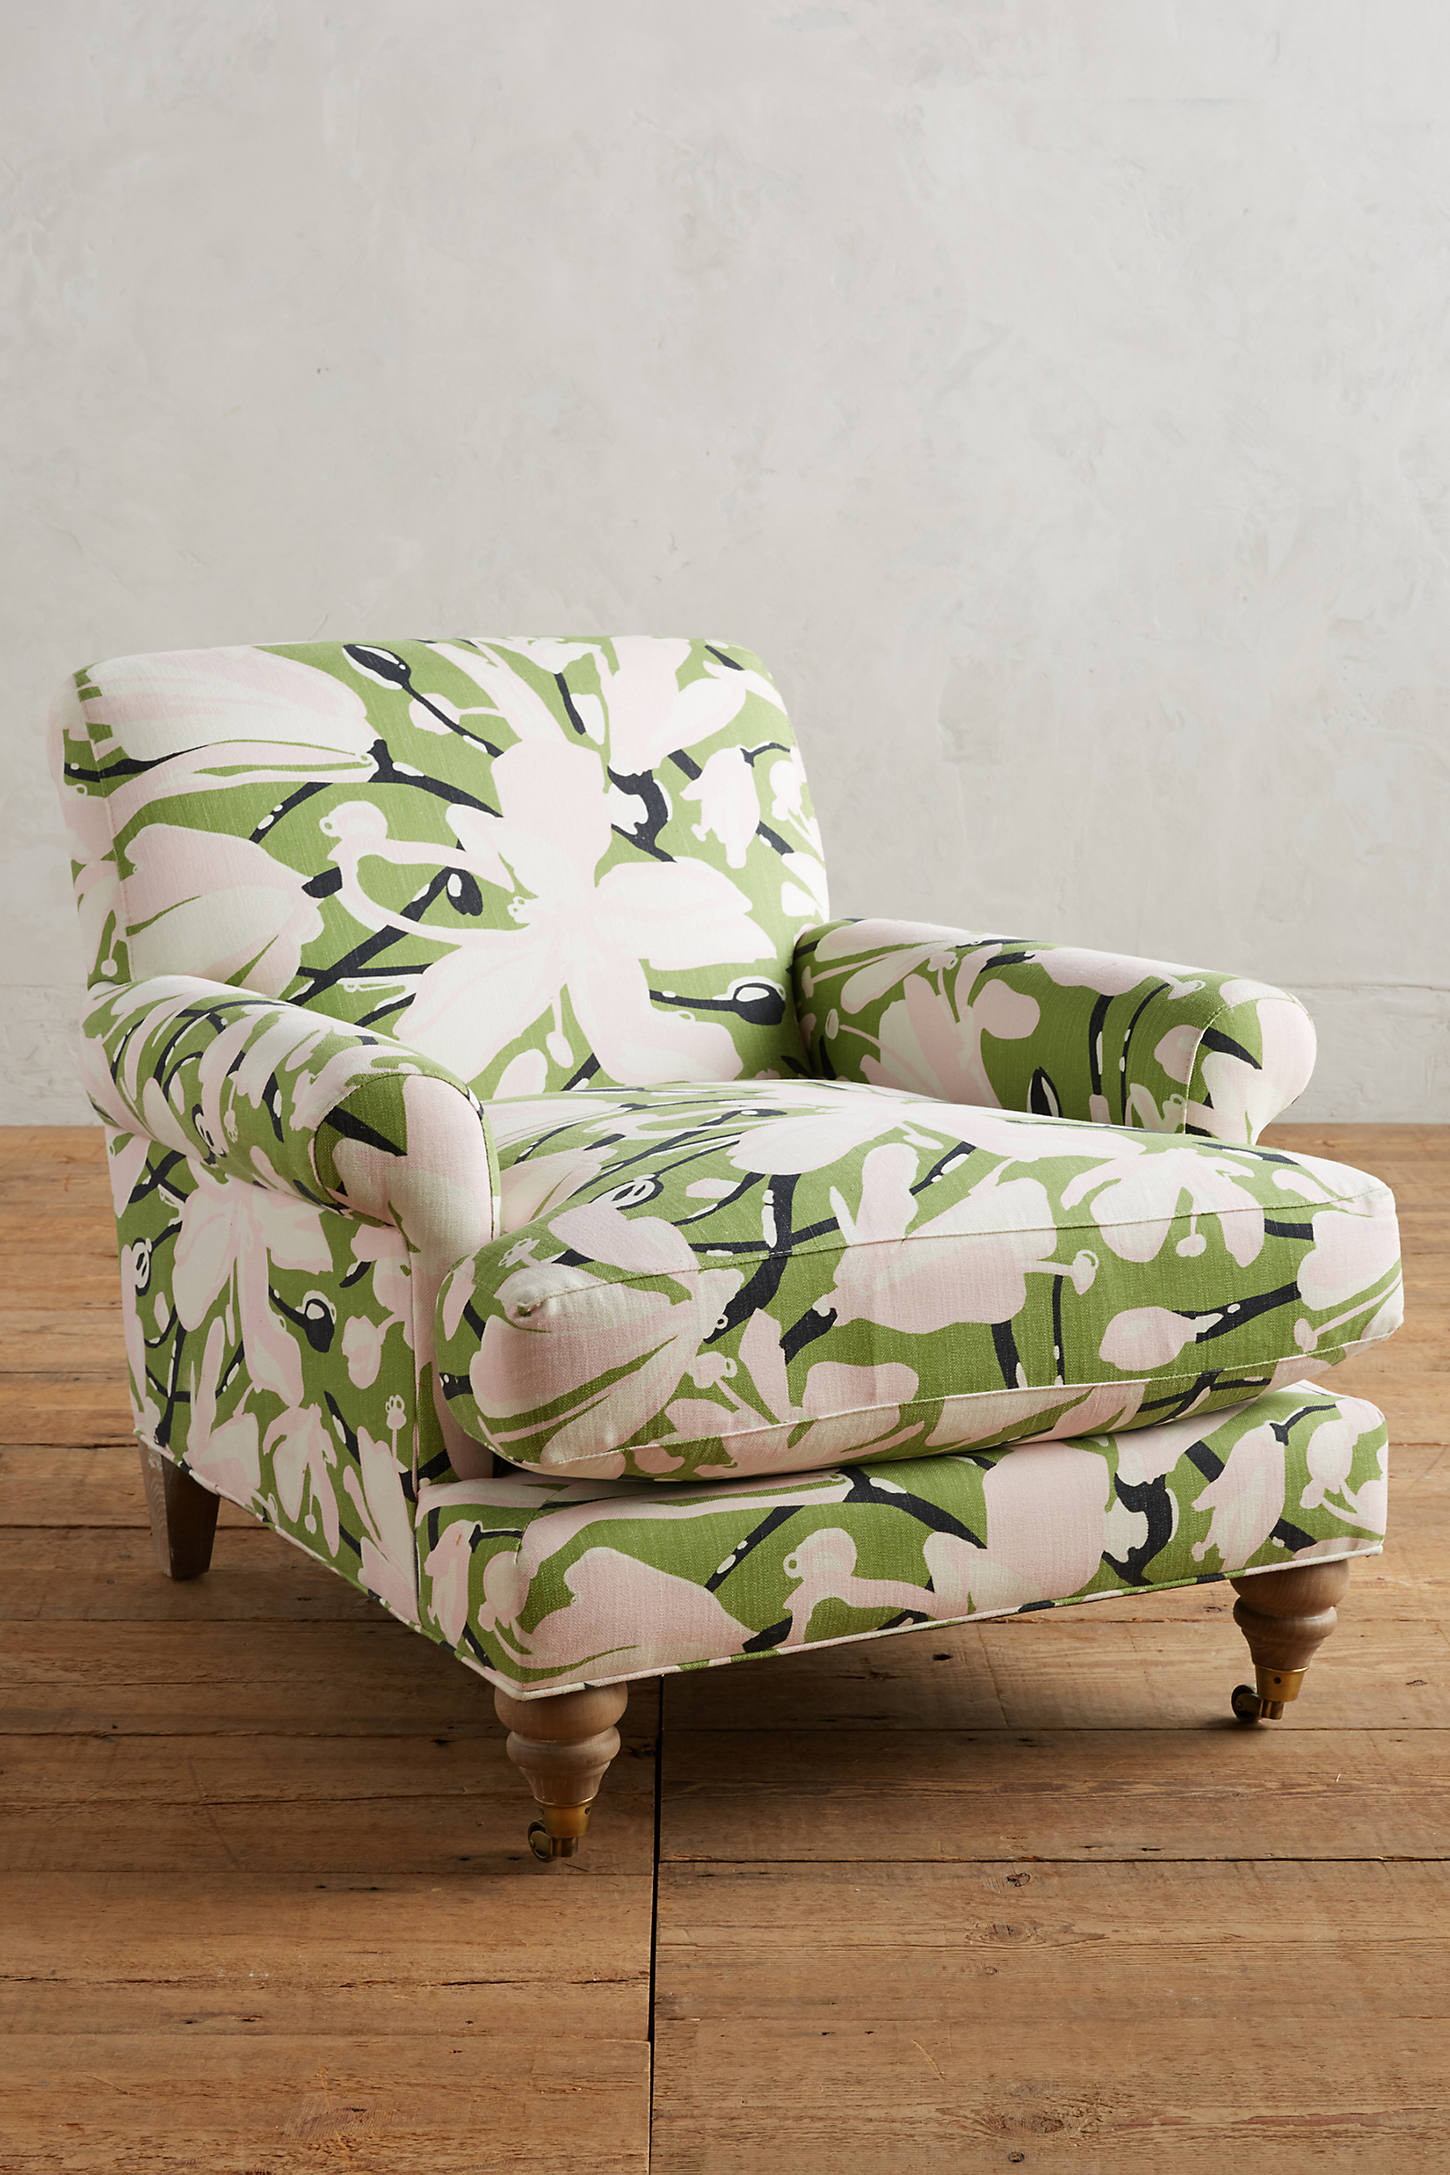 WHIT Floral-Printed Willoughby Chair